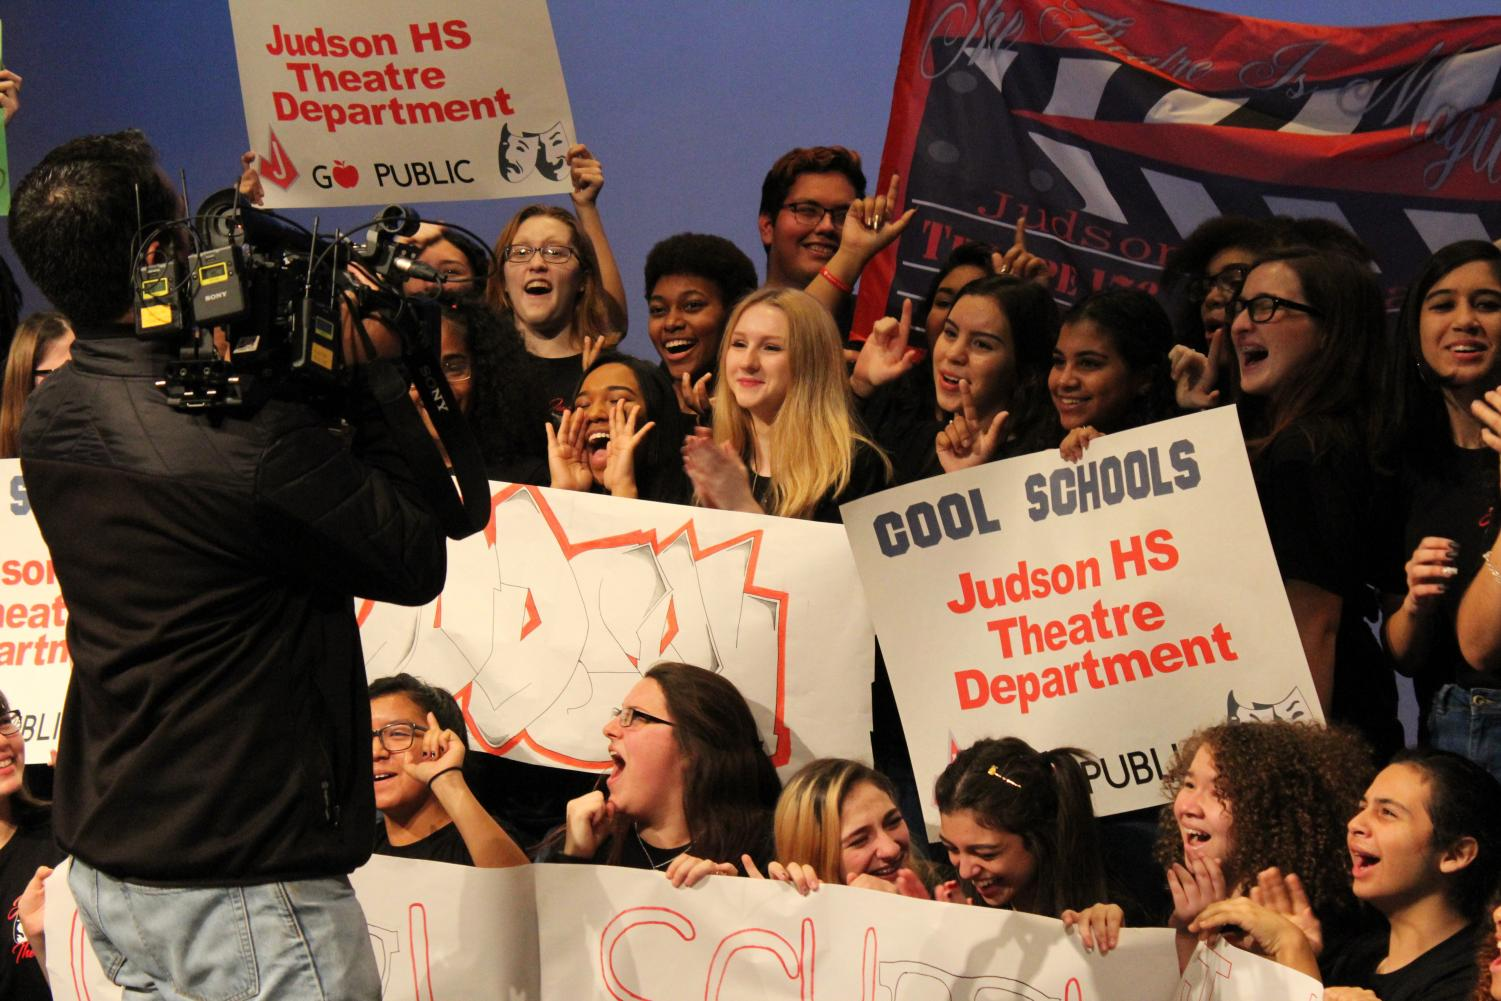 The Judson theater program is celebrating their award from KSAT's 'Cool Schools' contest. Theater will be the major role in the JISD FIne Art Academy this summer.